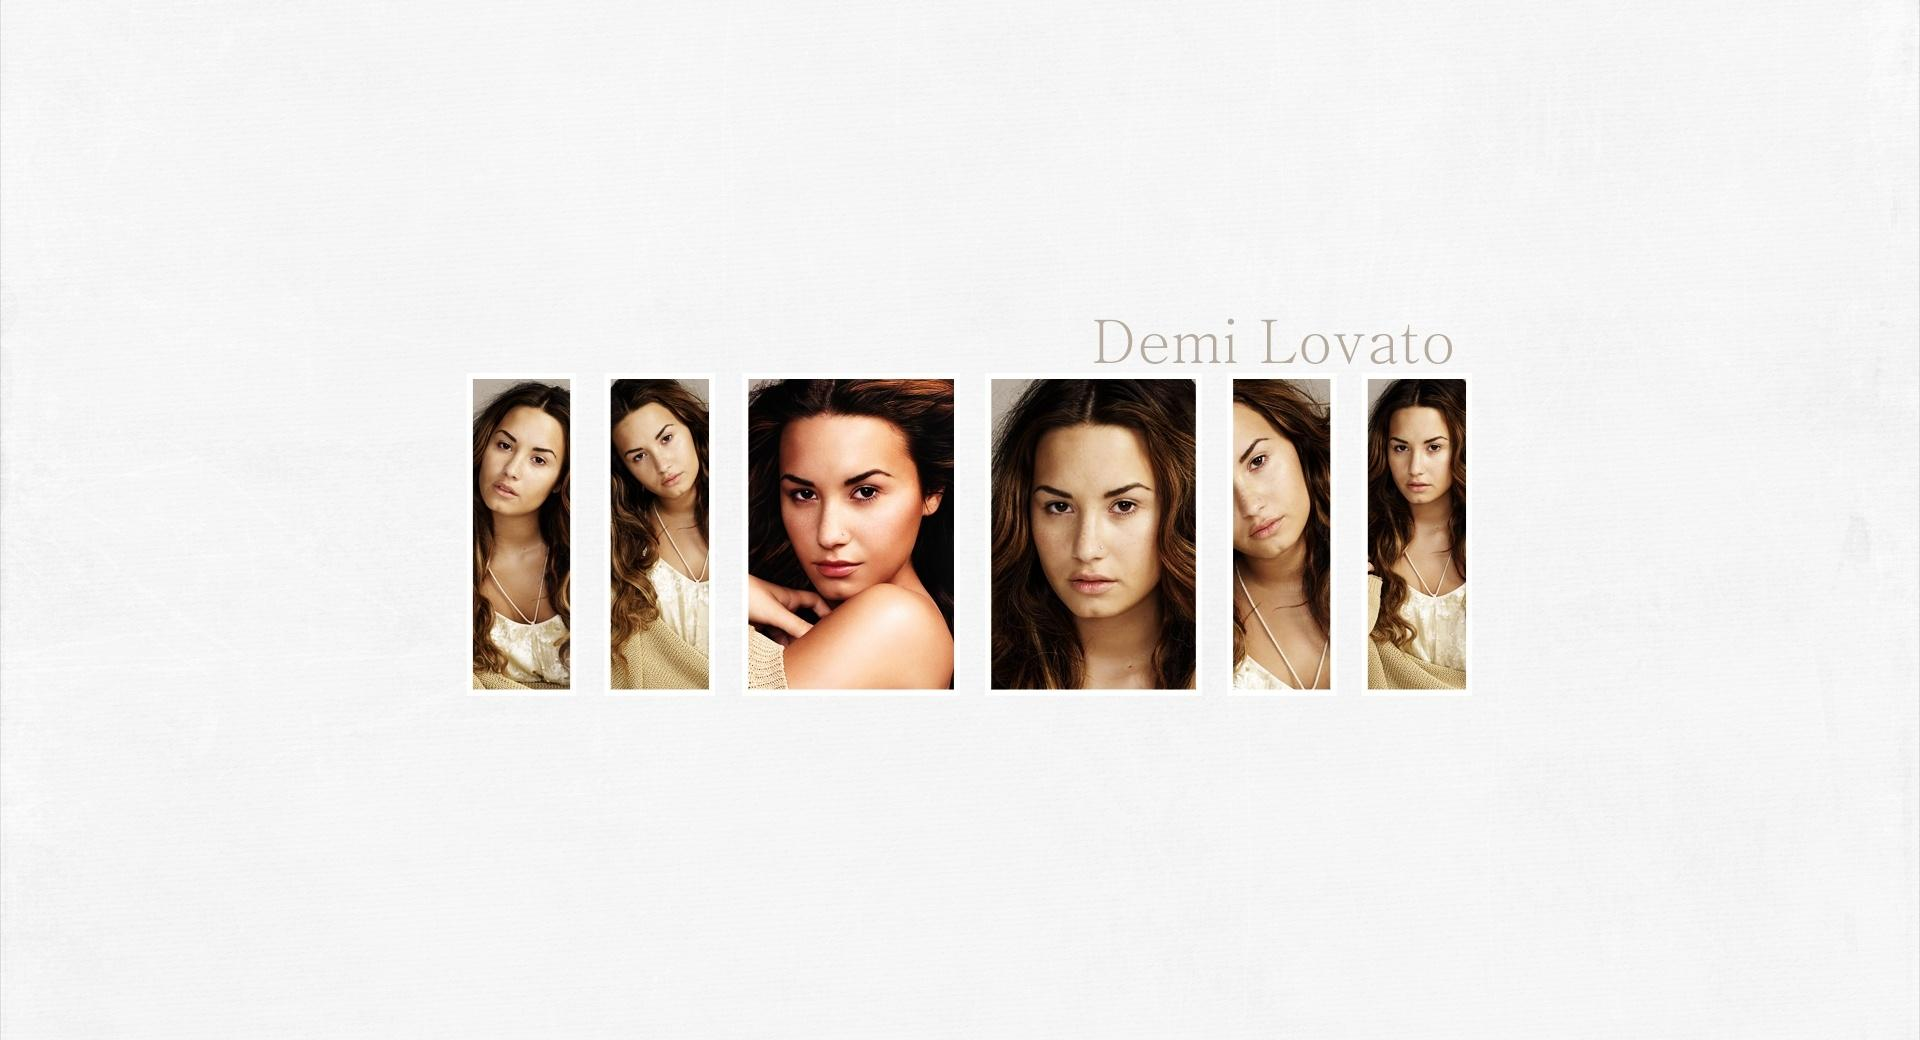 Demi Lovato No Makeup at 1334 x 750 iPhone 7 size wallpapers HD quality